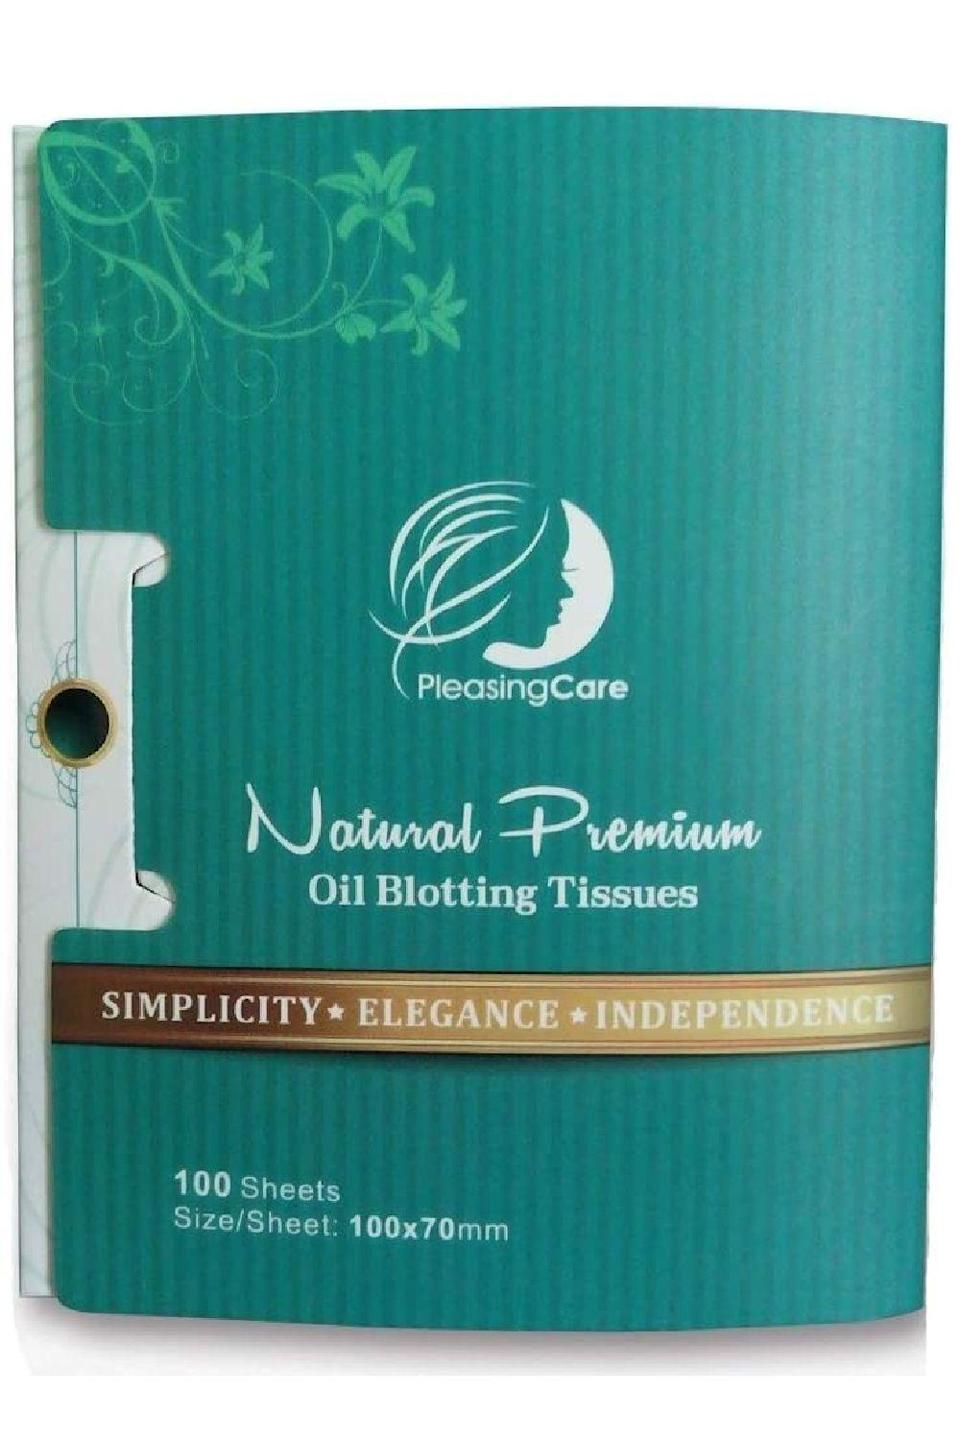 """<p><strong>PleasingCare</strong></p><p>amazon.com</p><p><strong>$6.95</strong></p><p><a href=""""https://www.amazon.com/dp/B00XENXJTO?tag=syn-yahoo-20&ascsubtag=%5Bartid%7C10049.g.35020776%5Bsrc%7Cyahoo-us"""" rel=""""nofollow noopener"""" target=""""_blank"""" data-ylk=""""slk:Shop Now"""" class=""""link rapid-noclick-resp"""">Shop Now</a></p><p>Next time your face feels so oily that your makeup could slide right off, sop up some of that <a href=""""https://www.cosmopolitan.com/style-beauty/beauty/a30169086/sebaceous-filaments-facts/"""" rel=""""nofollow noopener"""" target=""""_blank"""" data-ylk=""""slk:sebum"""" class=""""link rapid-noclick-resp"""">sebum</a> (sorry, that was gross) with both sides of these extra-large sheets. <strong>Made with natural linen fibers and bamboo charcoal</strong>, these blotting papers have more than 7,500 positive reviews on Amazon to back them up. </p>"""